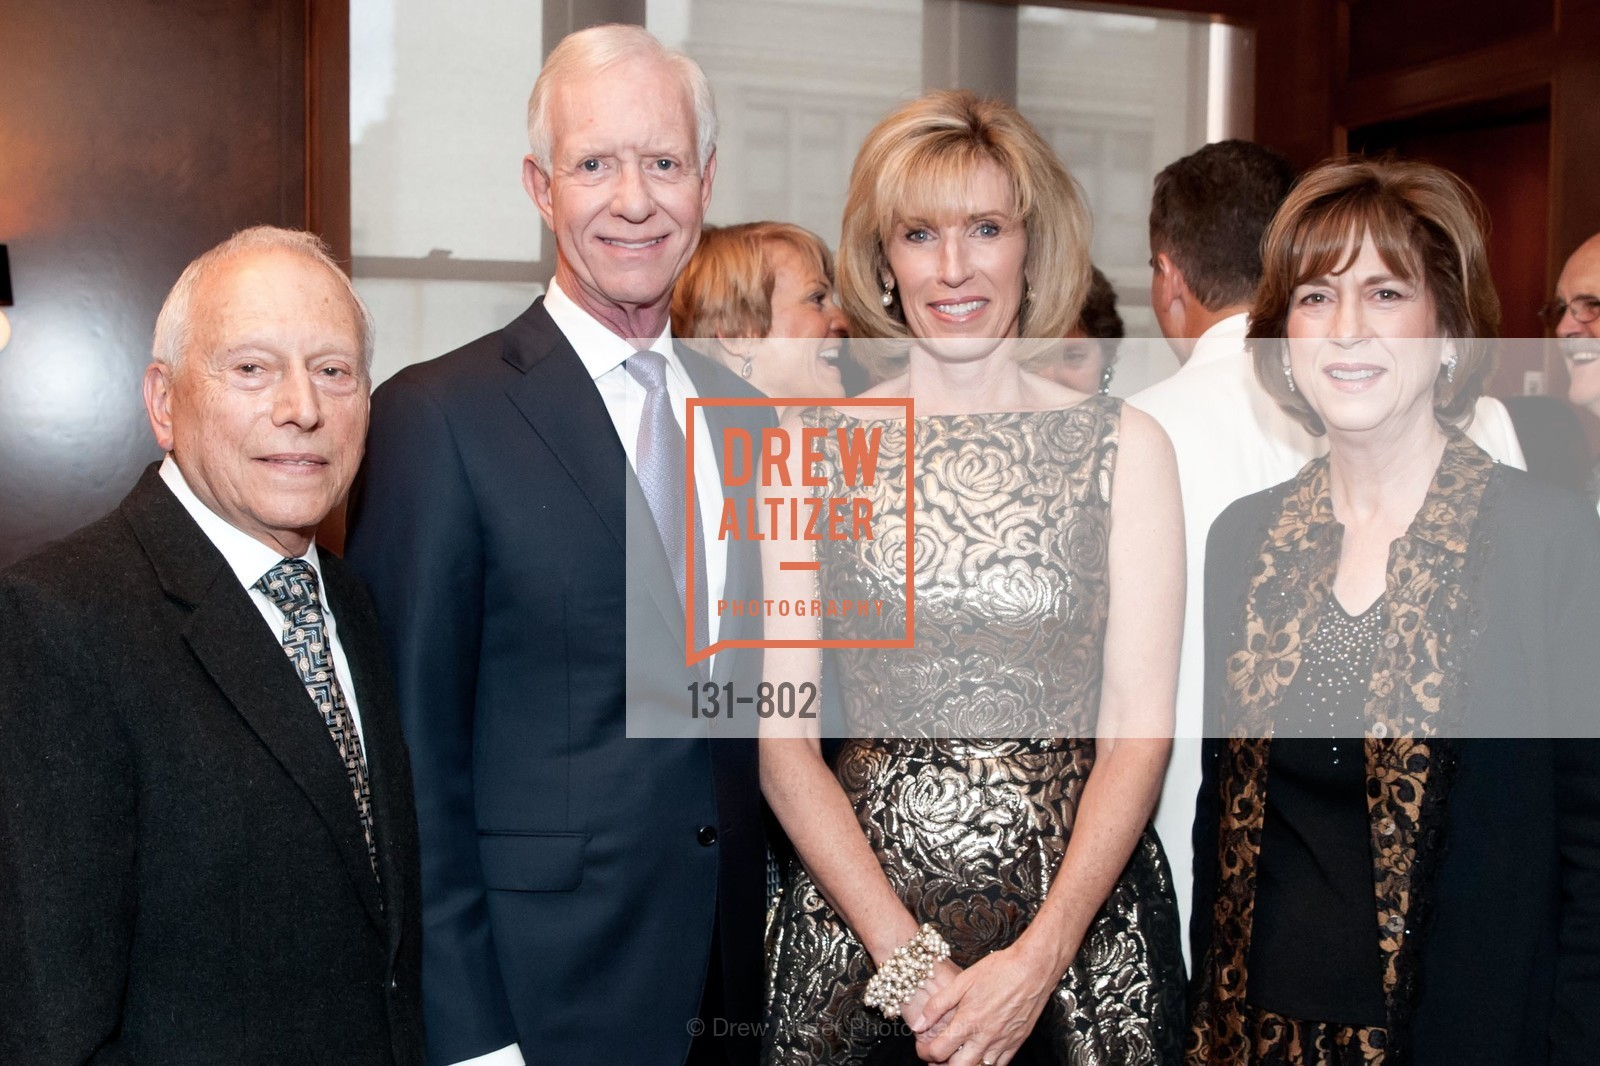 Sully Sullenberger, Lorrie Sullenberger, MR PORTER Celebrate The San Francisco Issue of The Journal, US, April 24th, 2015,Drew Altizer, Drew Altizer Photography, full-service agency, private events, San Francisco photographer, photographer california